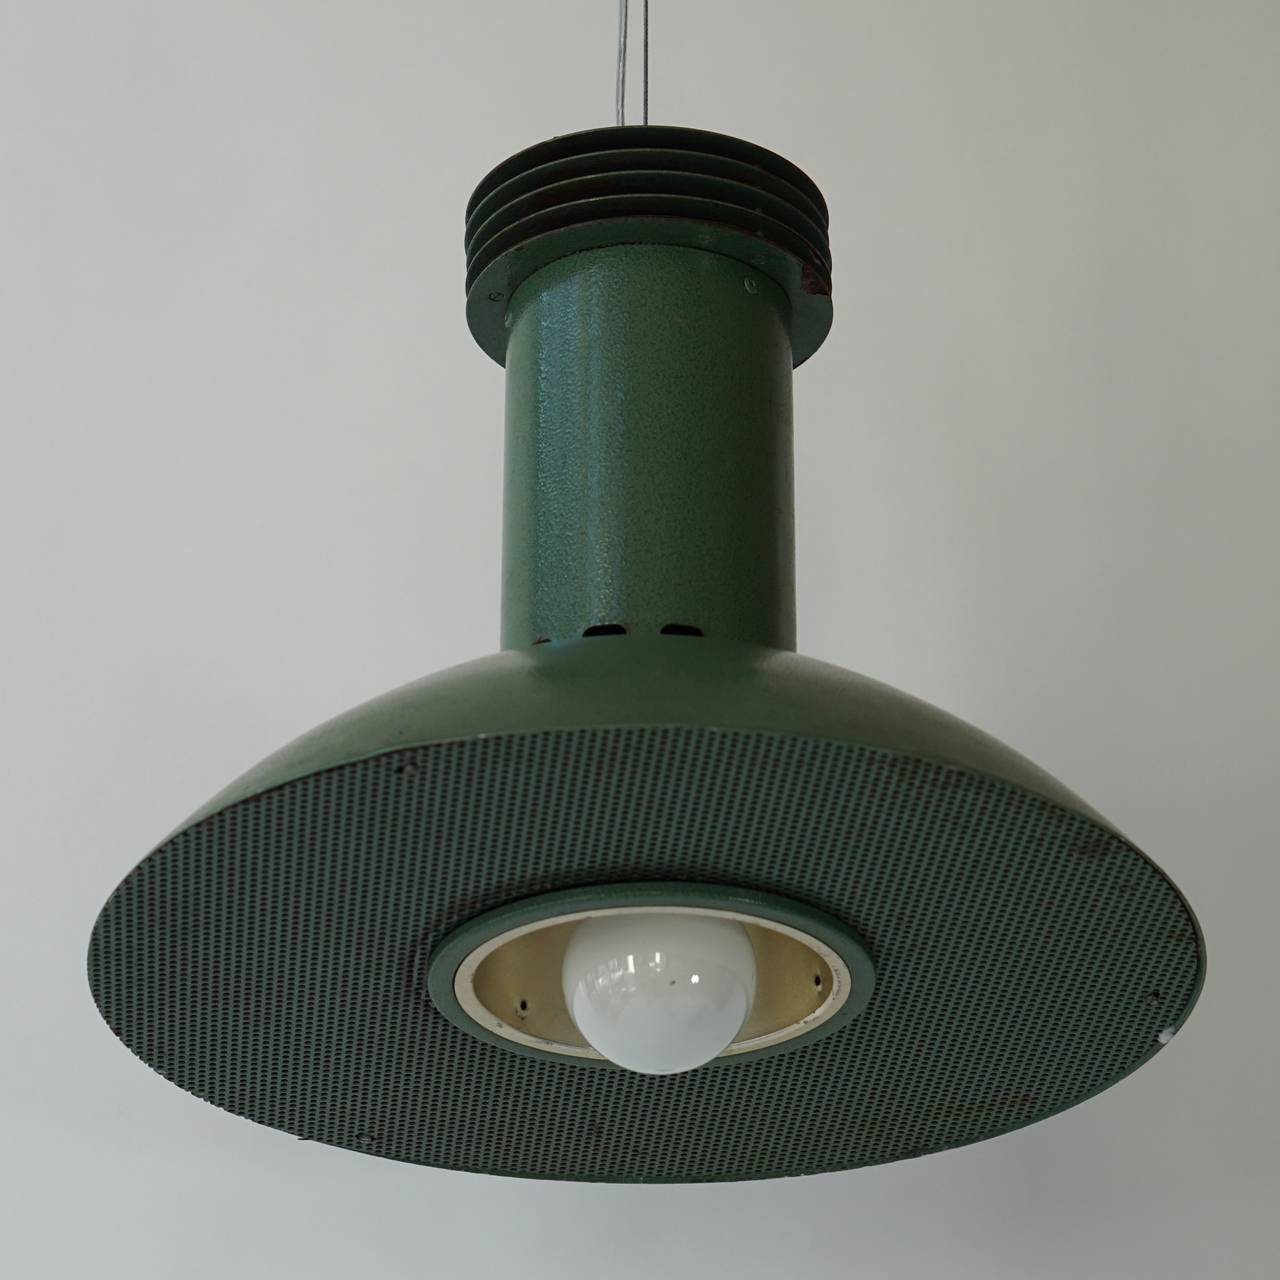 One green metal Industrial light with one E27 bulb.